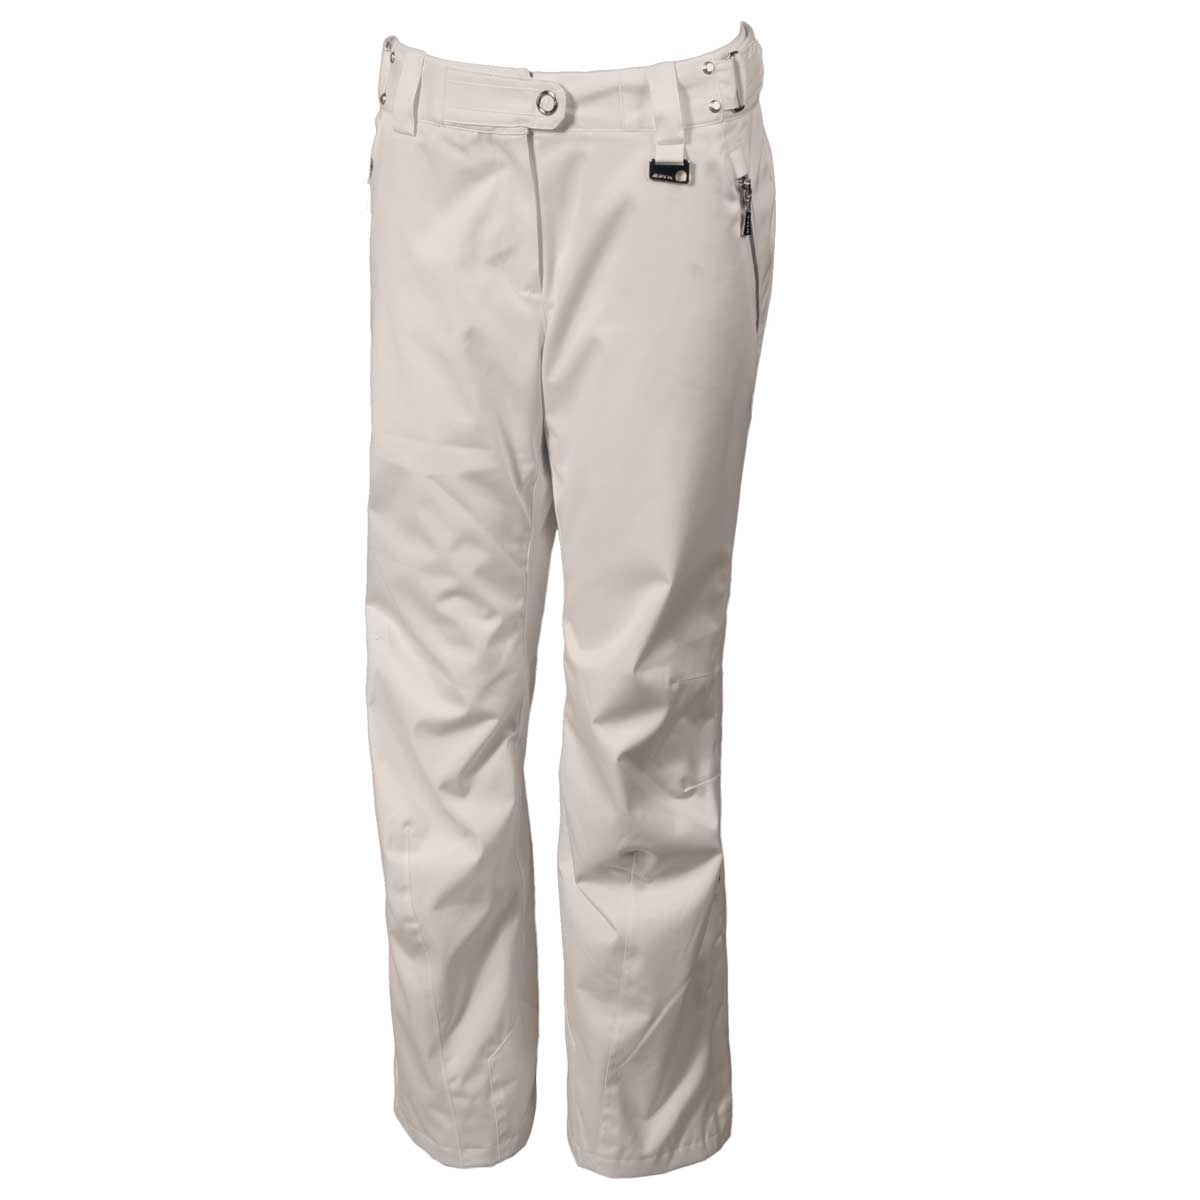 Karbon Women's Conductor Pant in Champagne